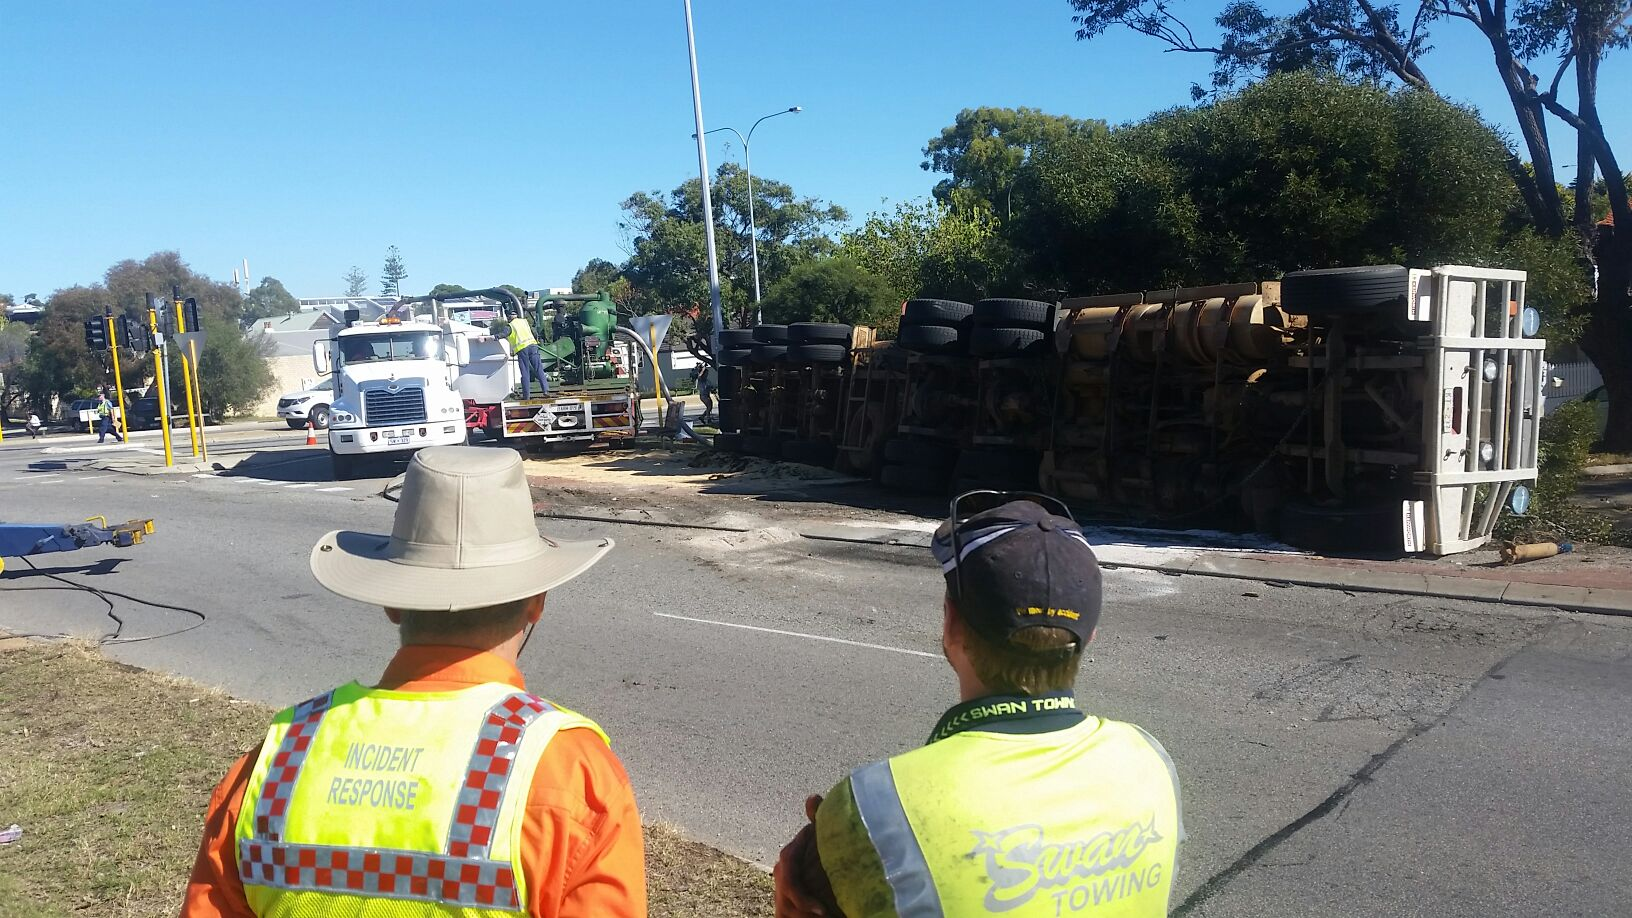 The aftermath of the truck rollover in Fremantle. Photo: Jon Bassett